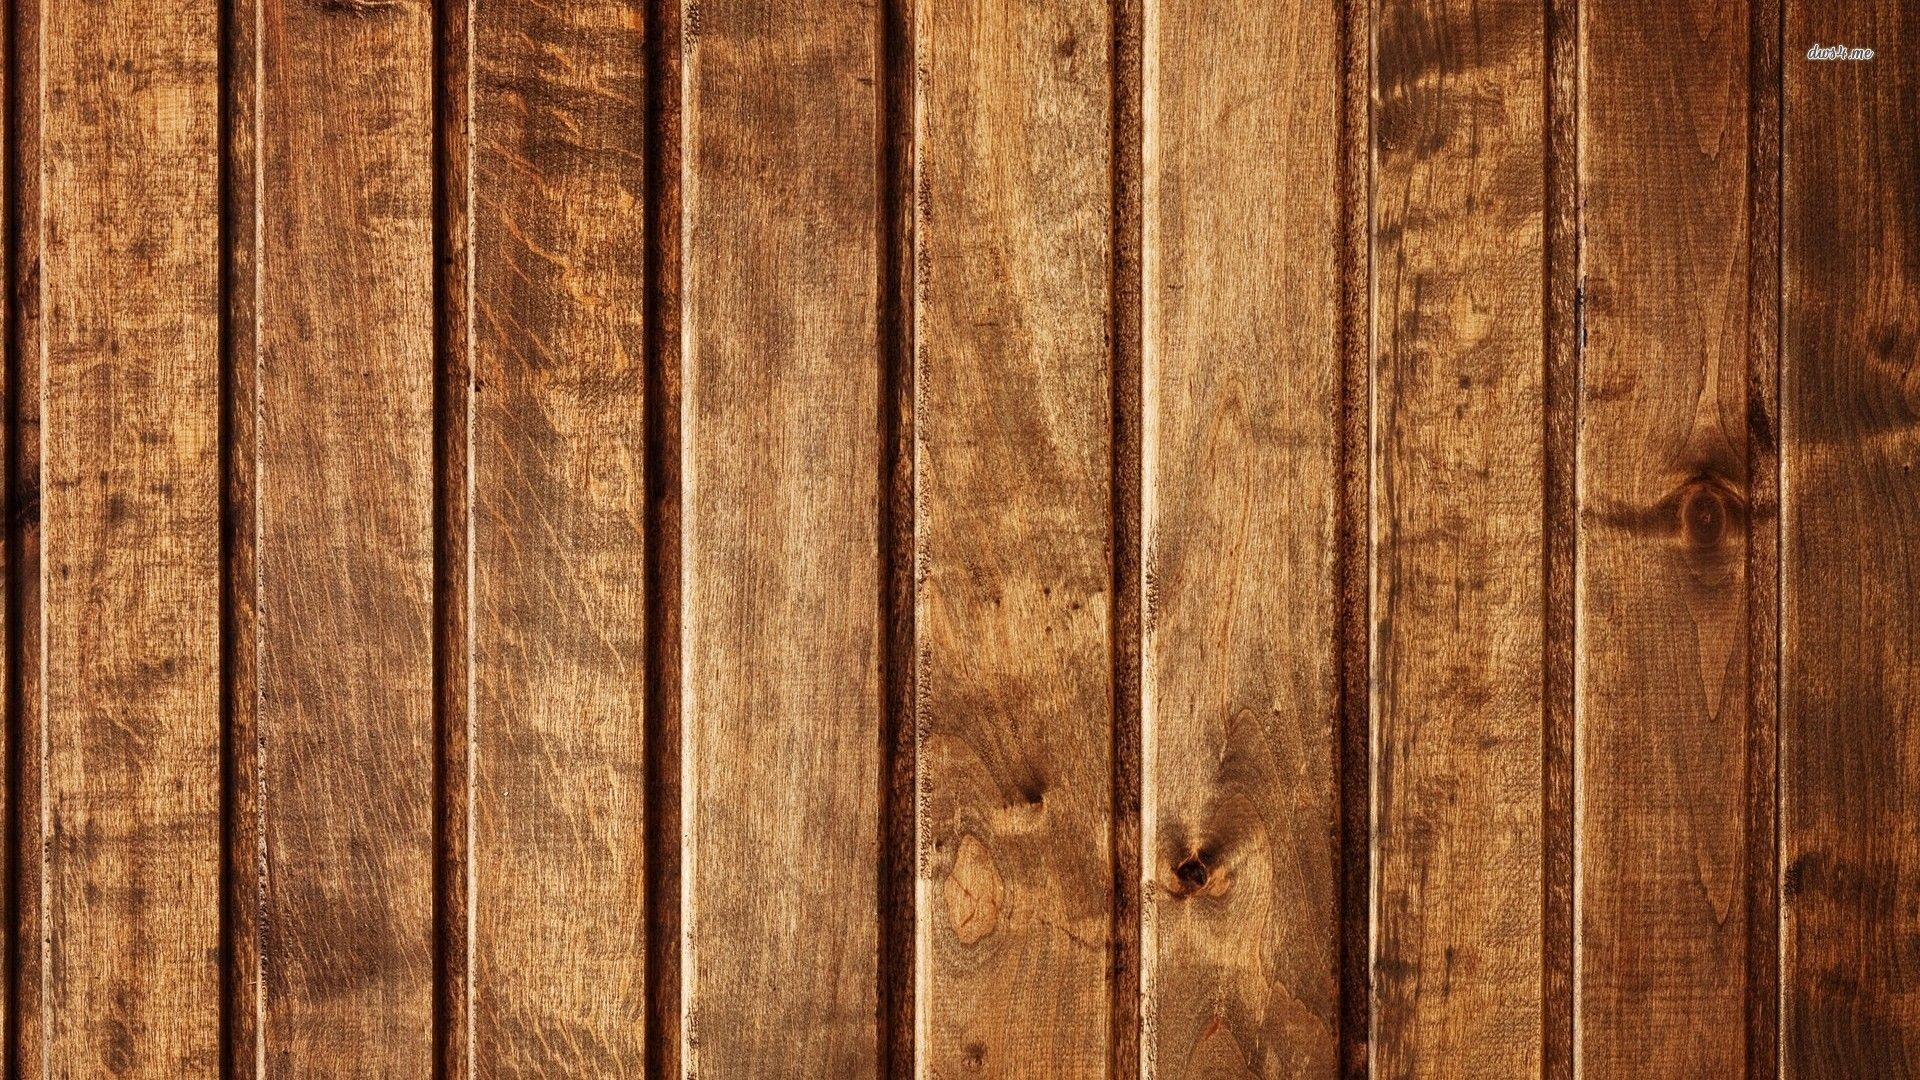 Wood grain wallpaper hd Wood architecture definition